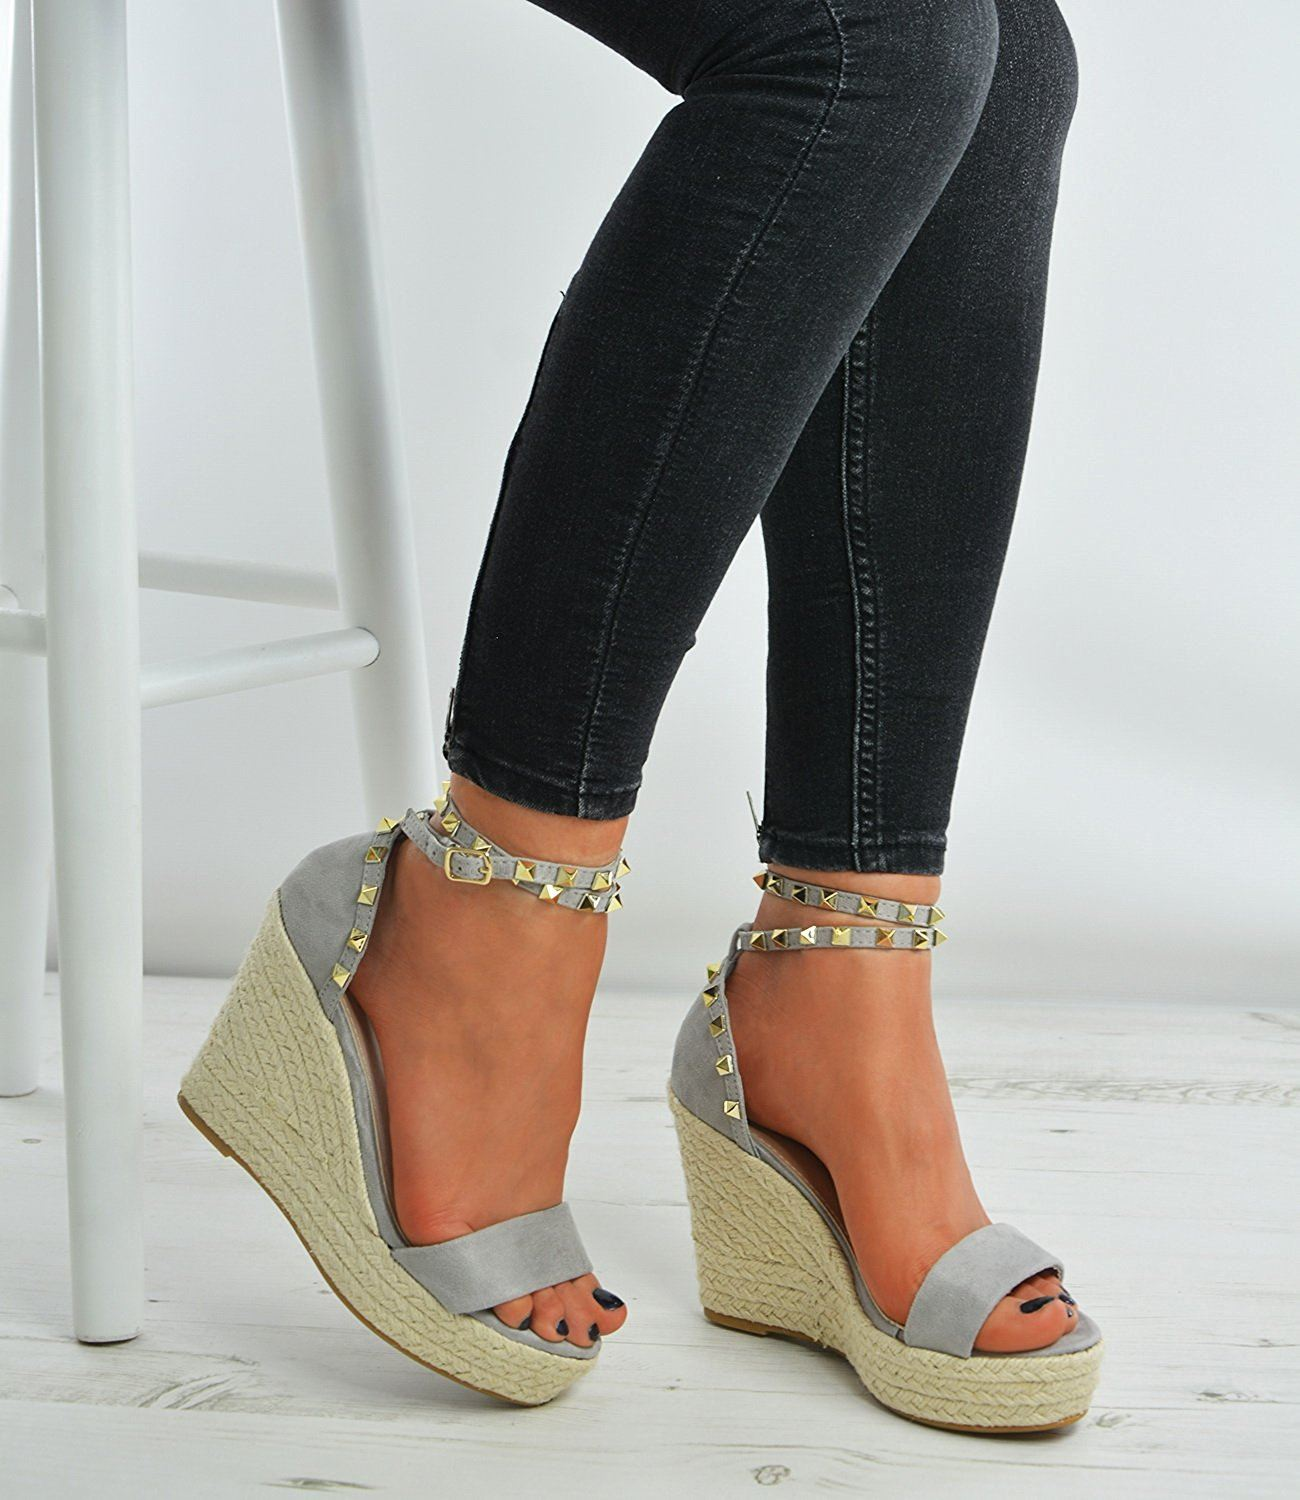 New Womens Suede Effect Studded Ankle Strap Wedge Espadrille Heels Shoes